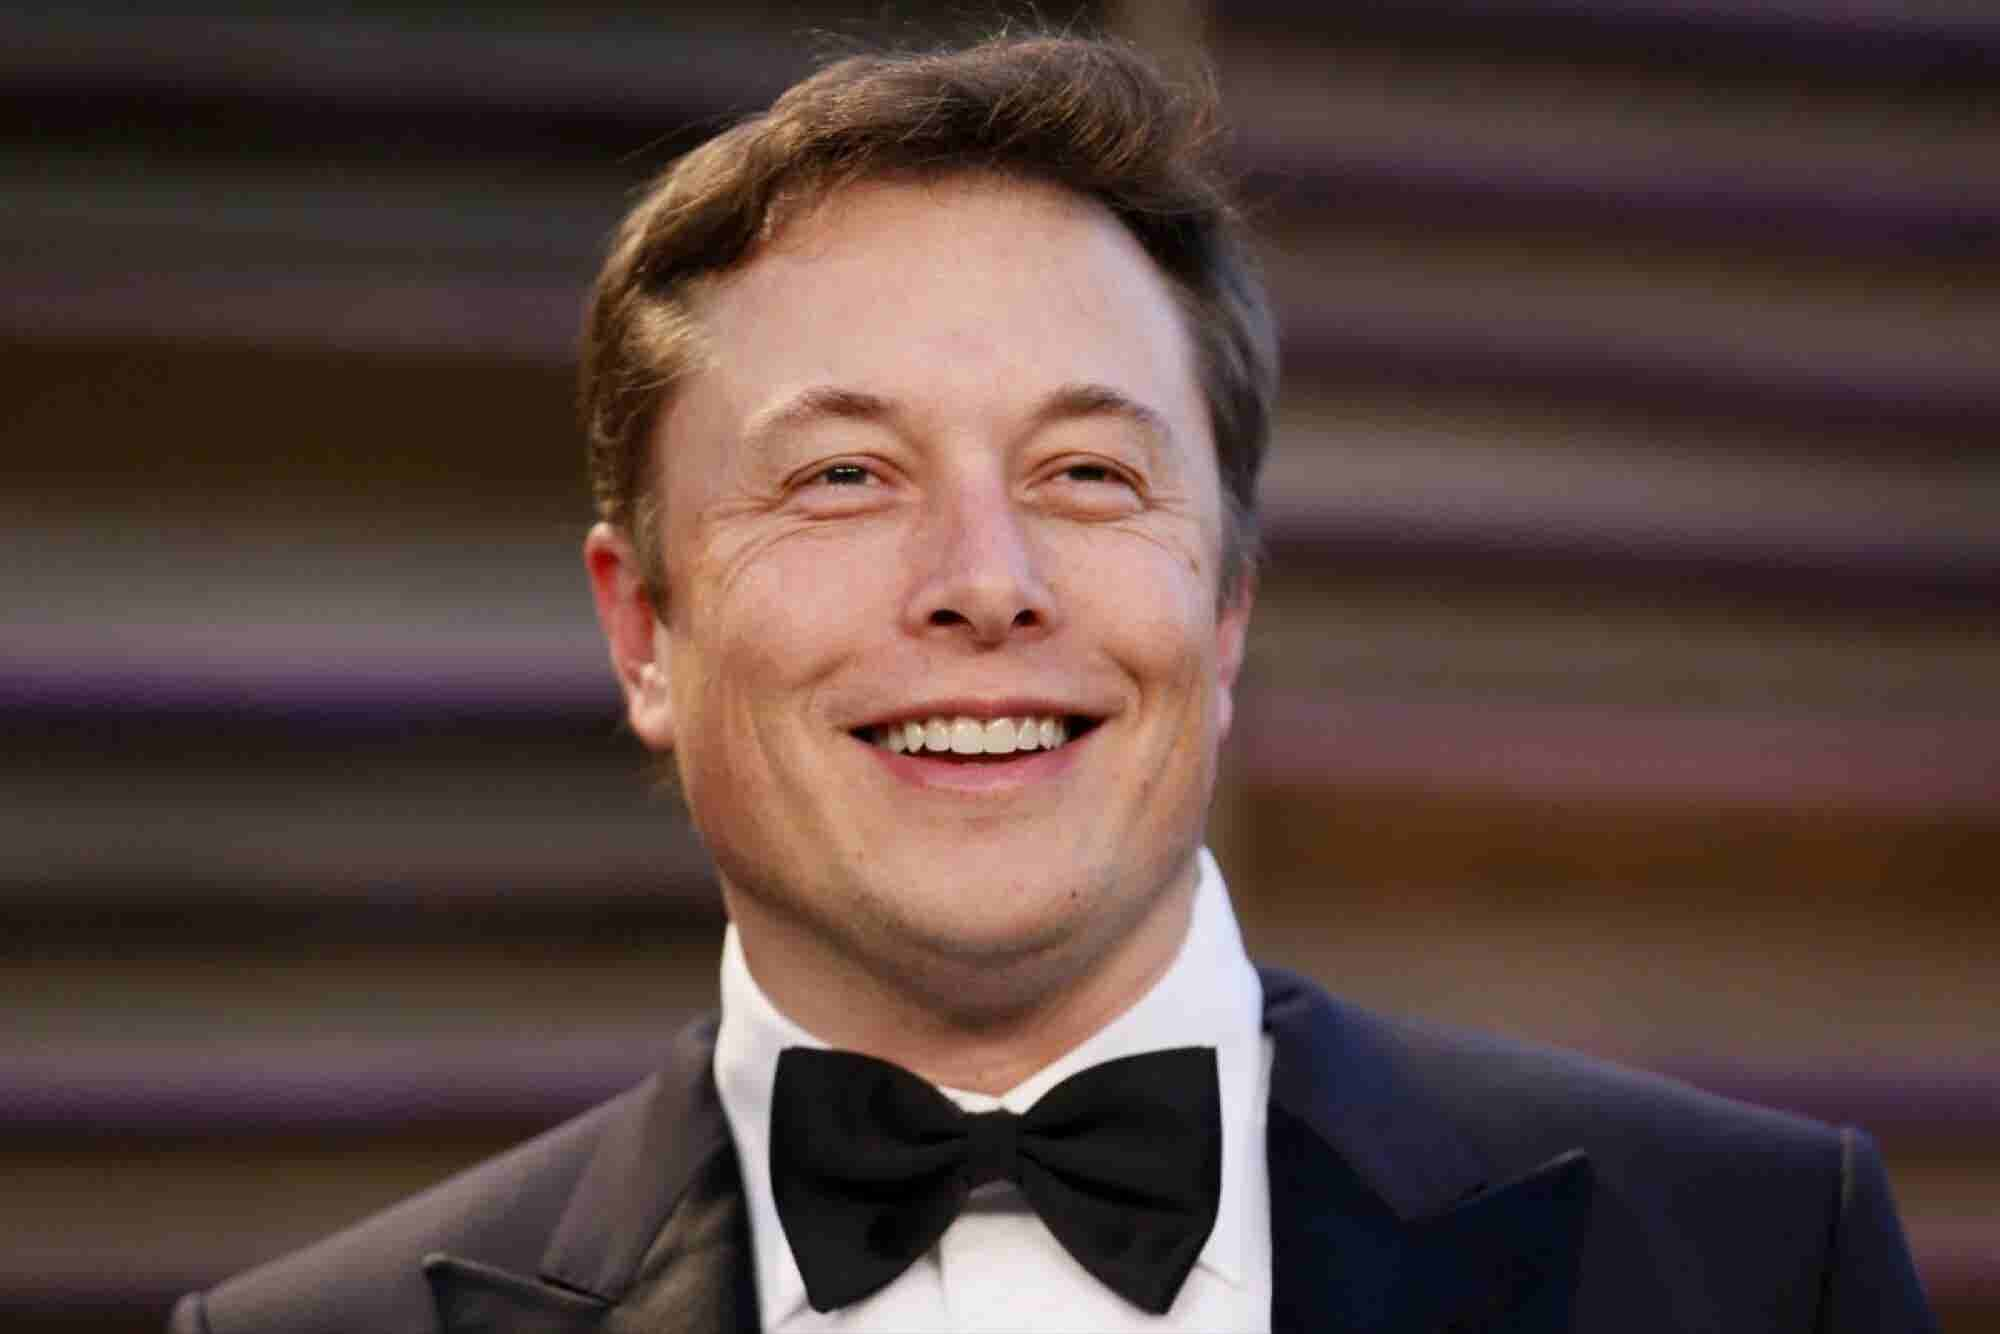 Elon Musk Confirms He Was at an Alleged Silicon Valley 'Sex Party' Until 1 a.m. -- But He Says He Thought it Was a Costume Party and Left Early